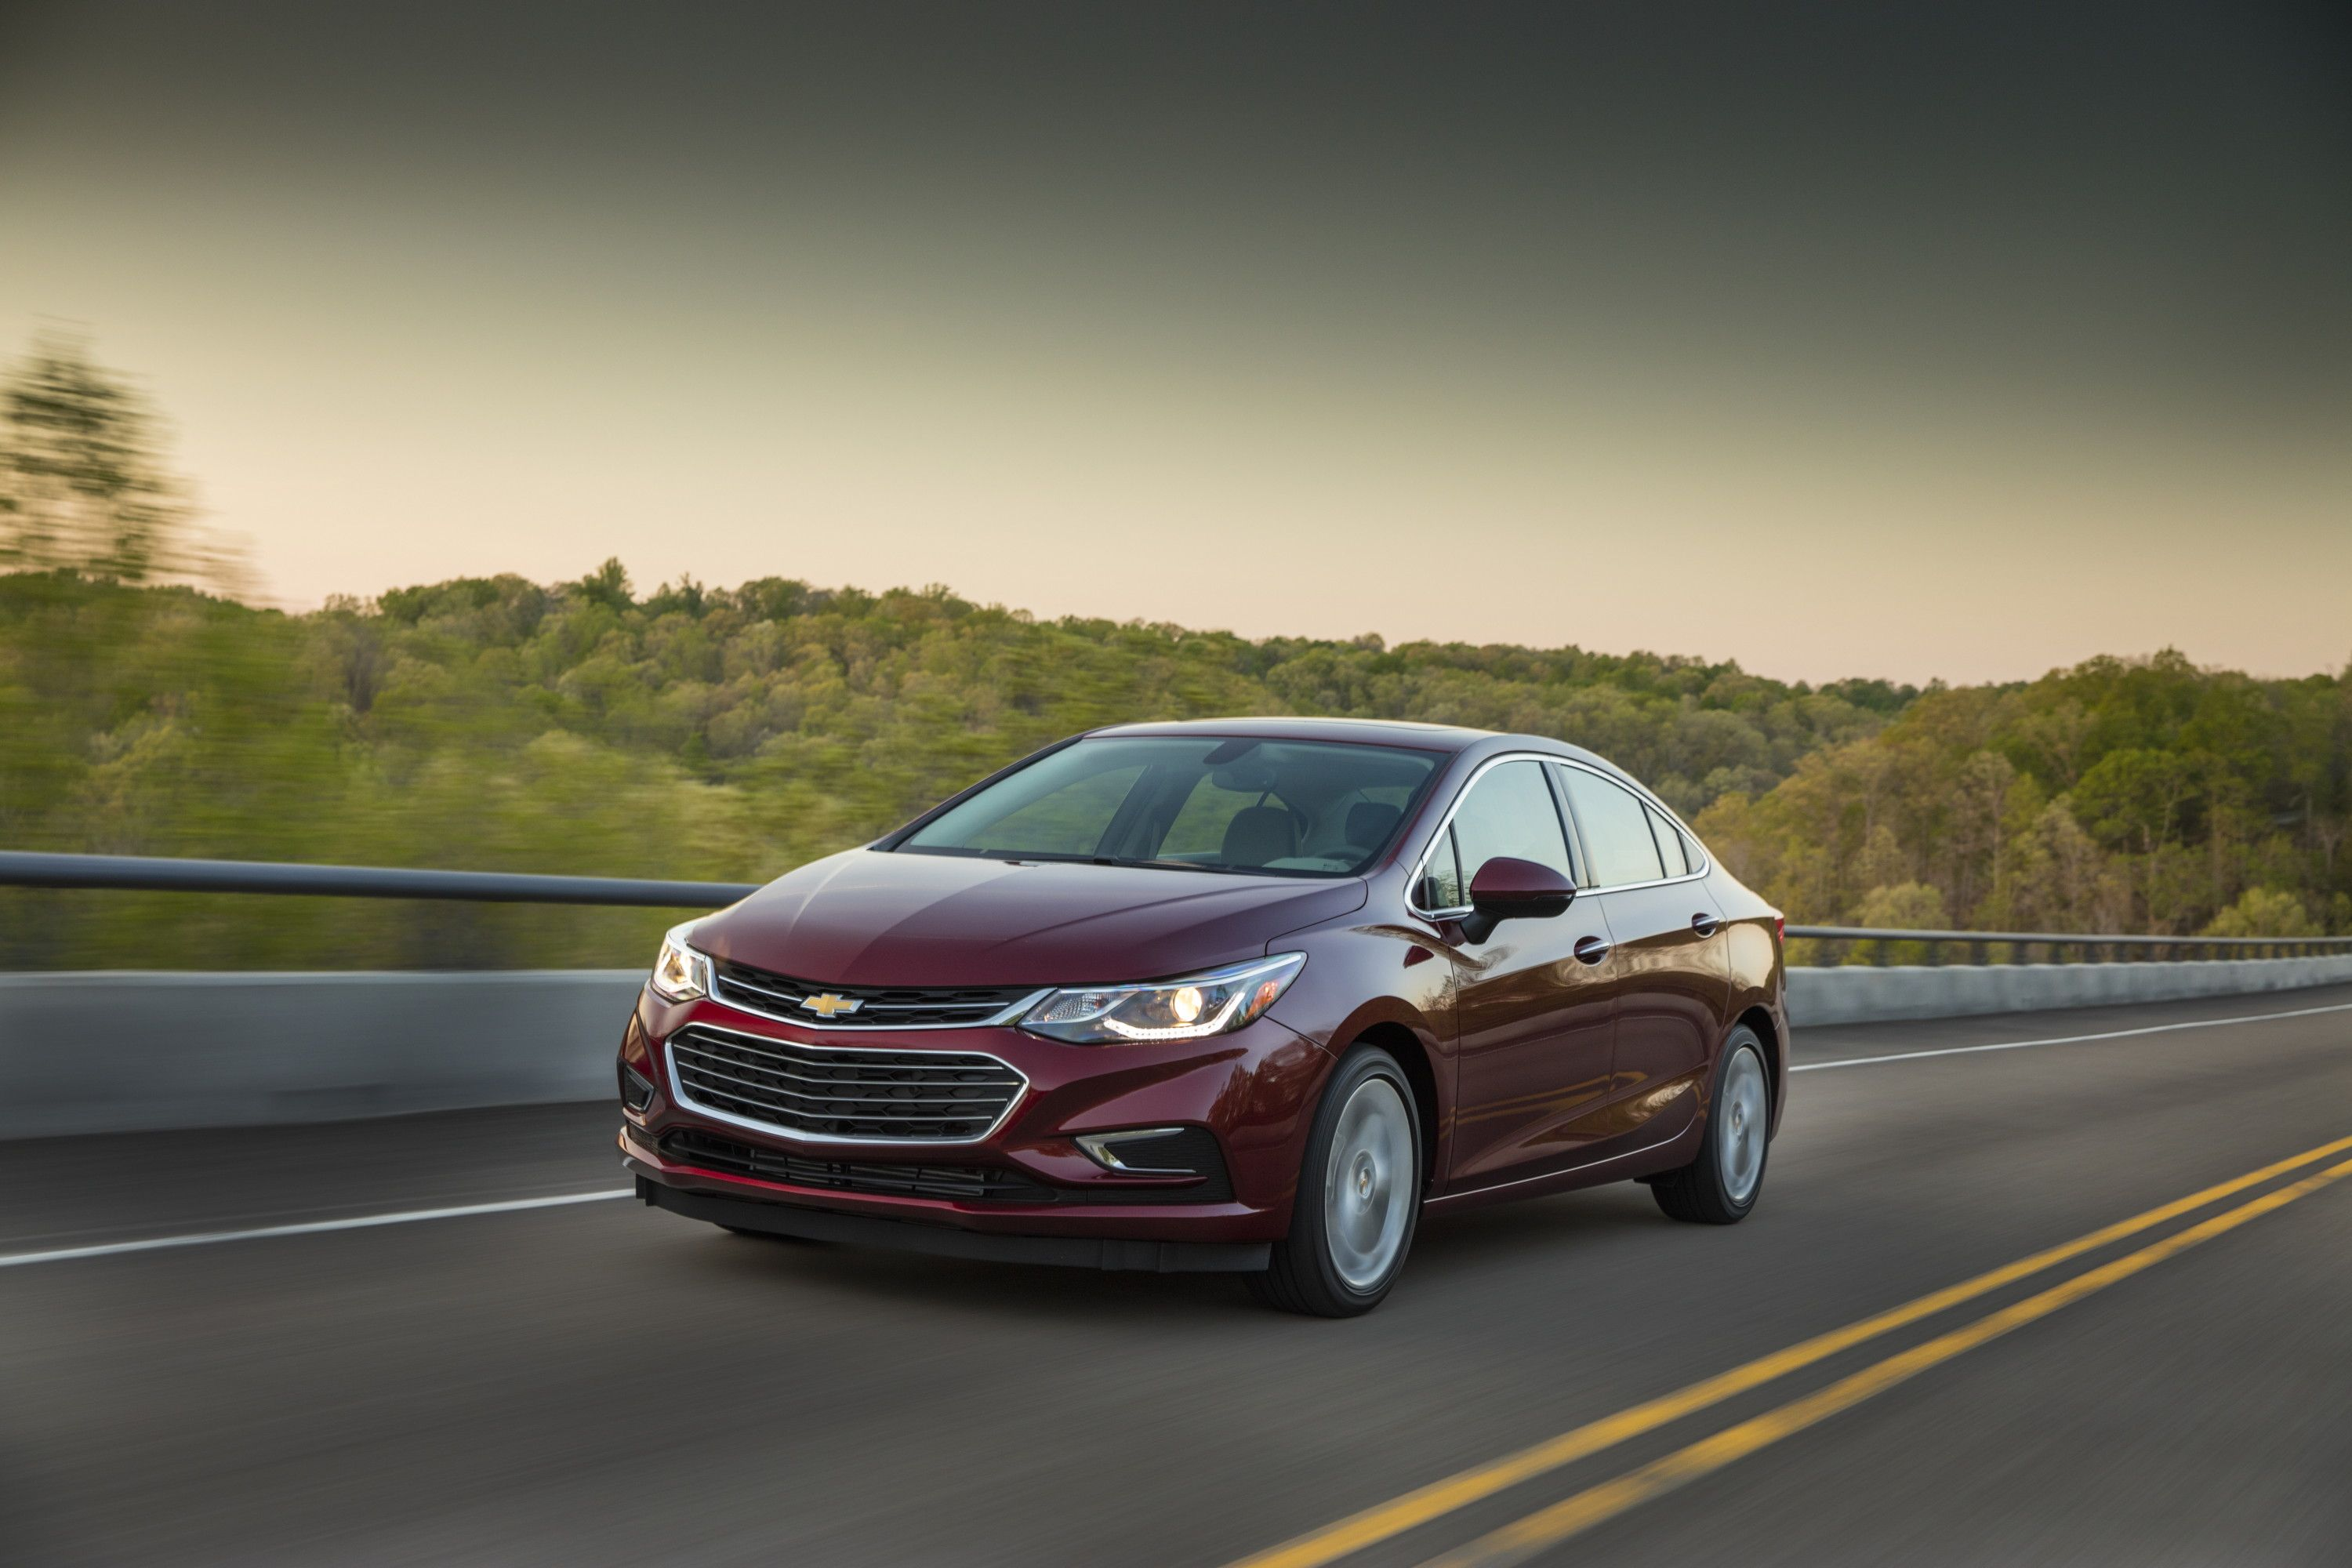 ss but wont won offer is possibility more powerful chevy cruze t engine news a chevrolet ltz